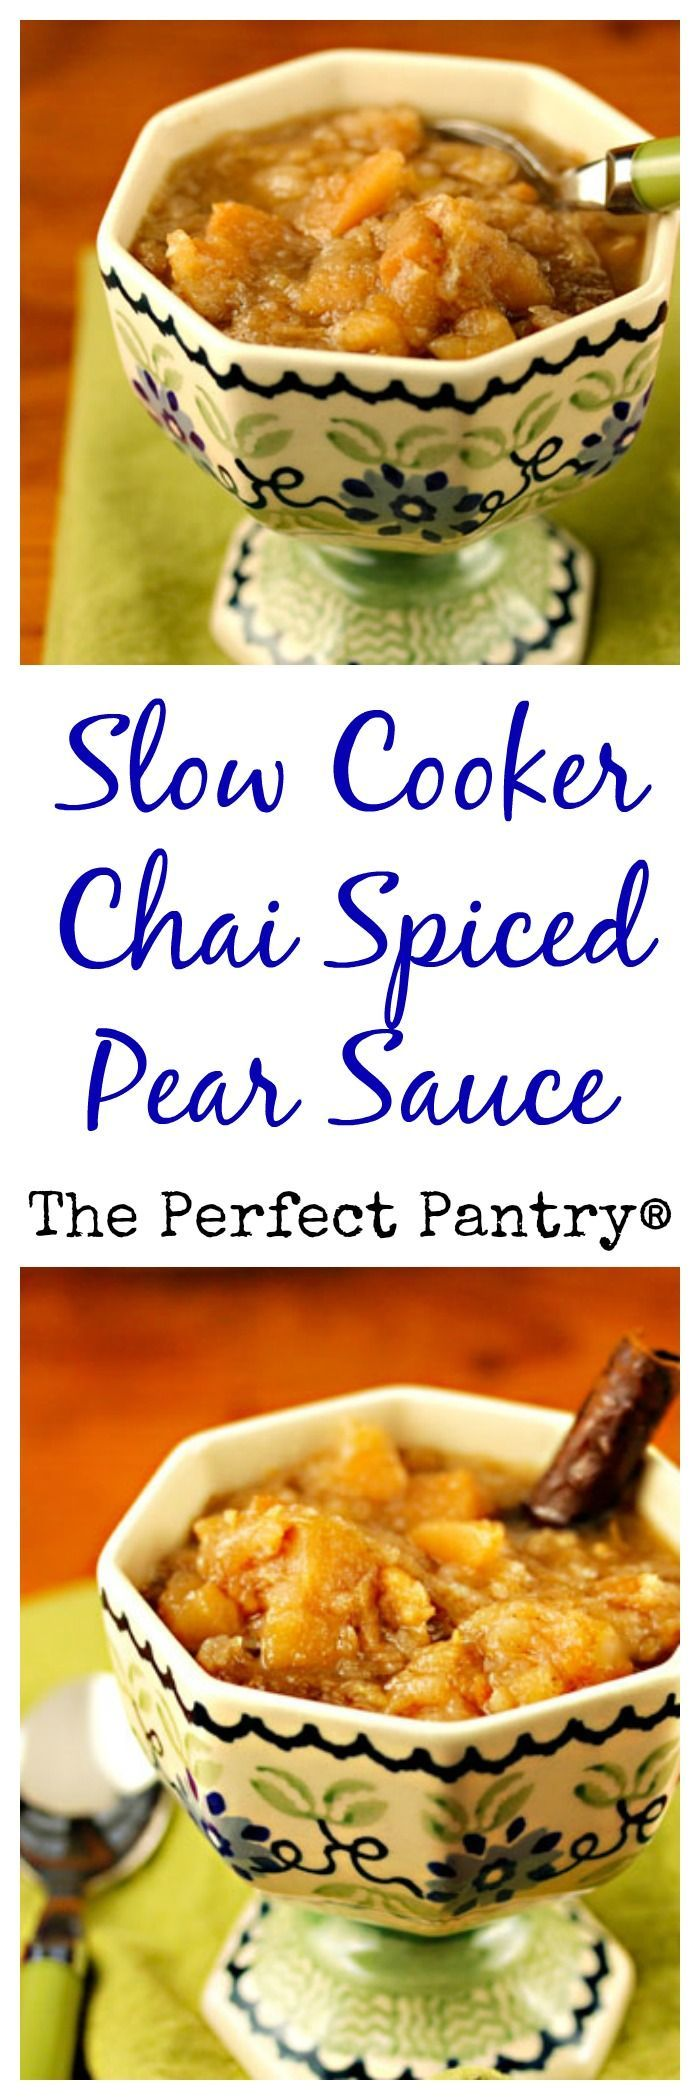 Best 25+ Spiced pear ideas on Pinterest | Pear recipes to ...